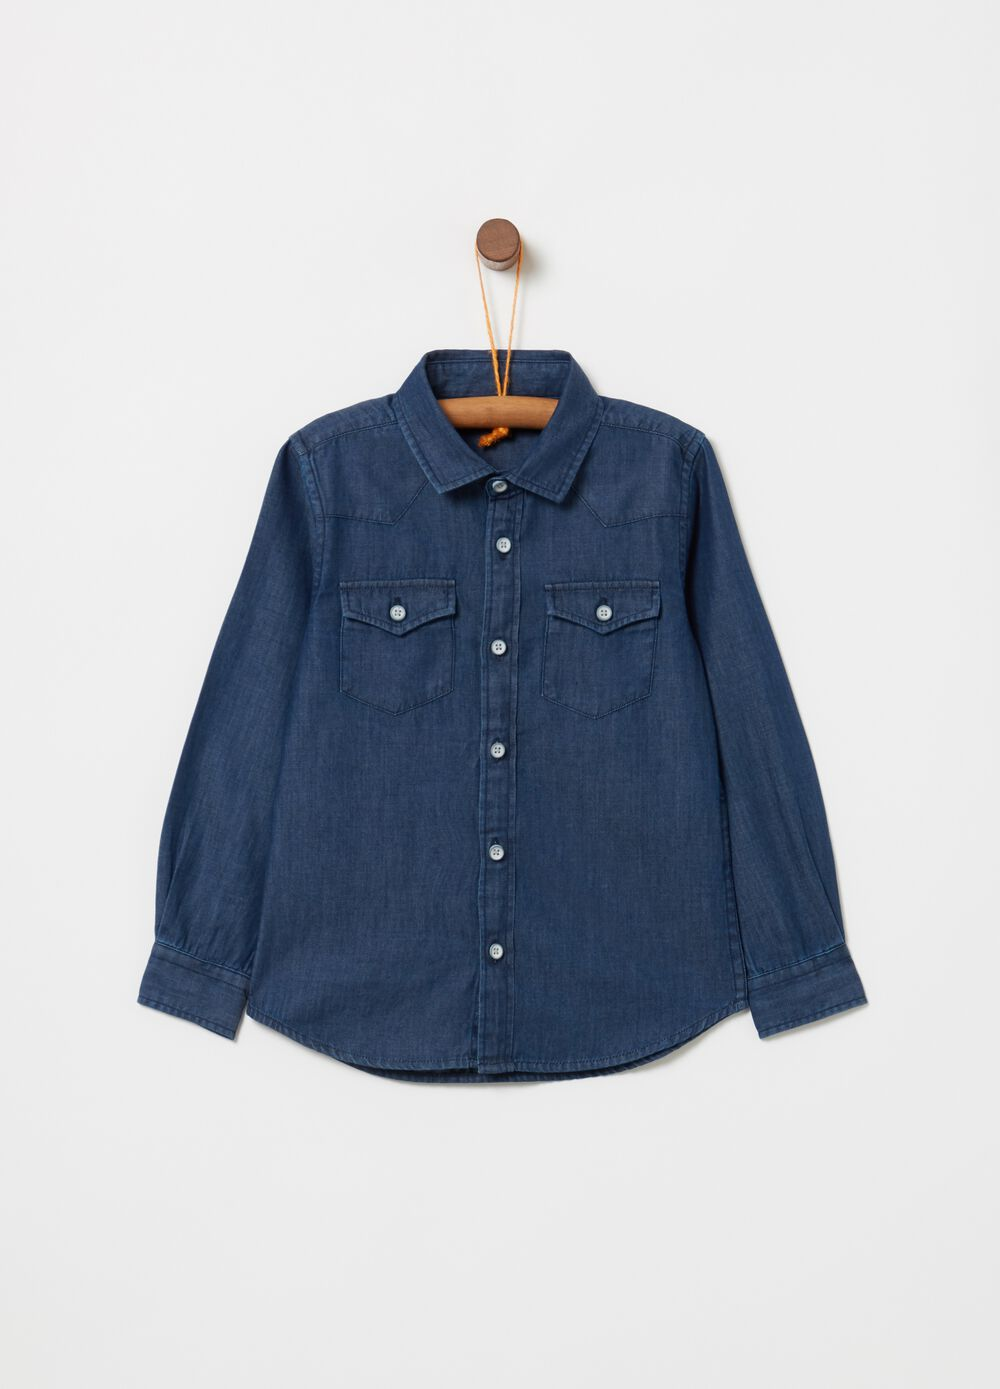 Denim shirt with pockets on the chest